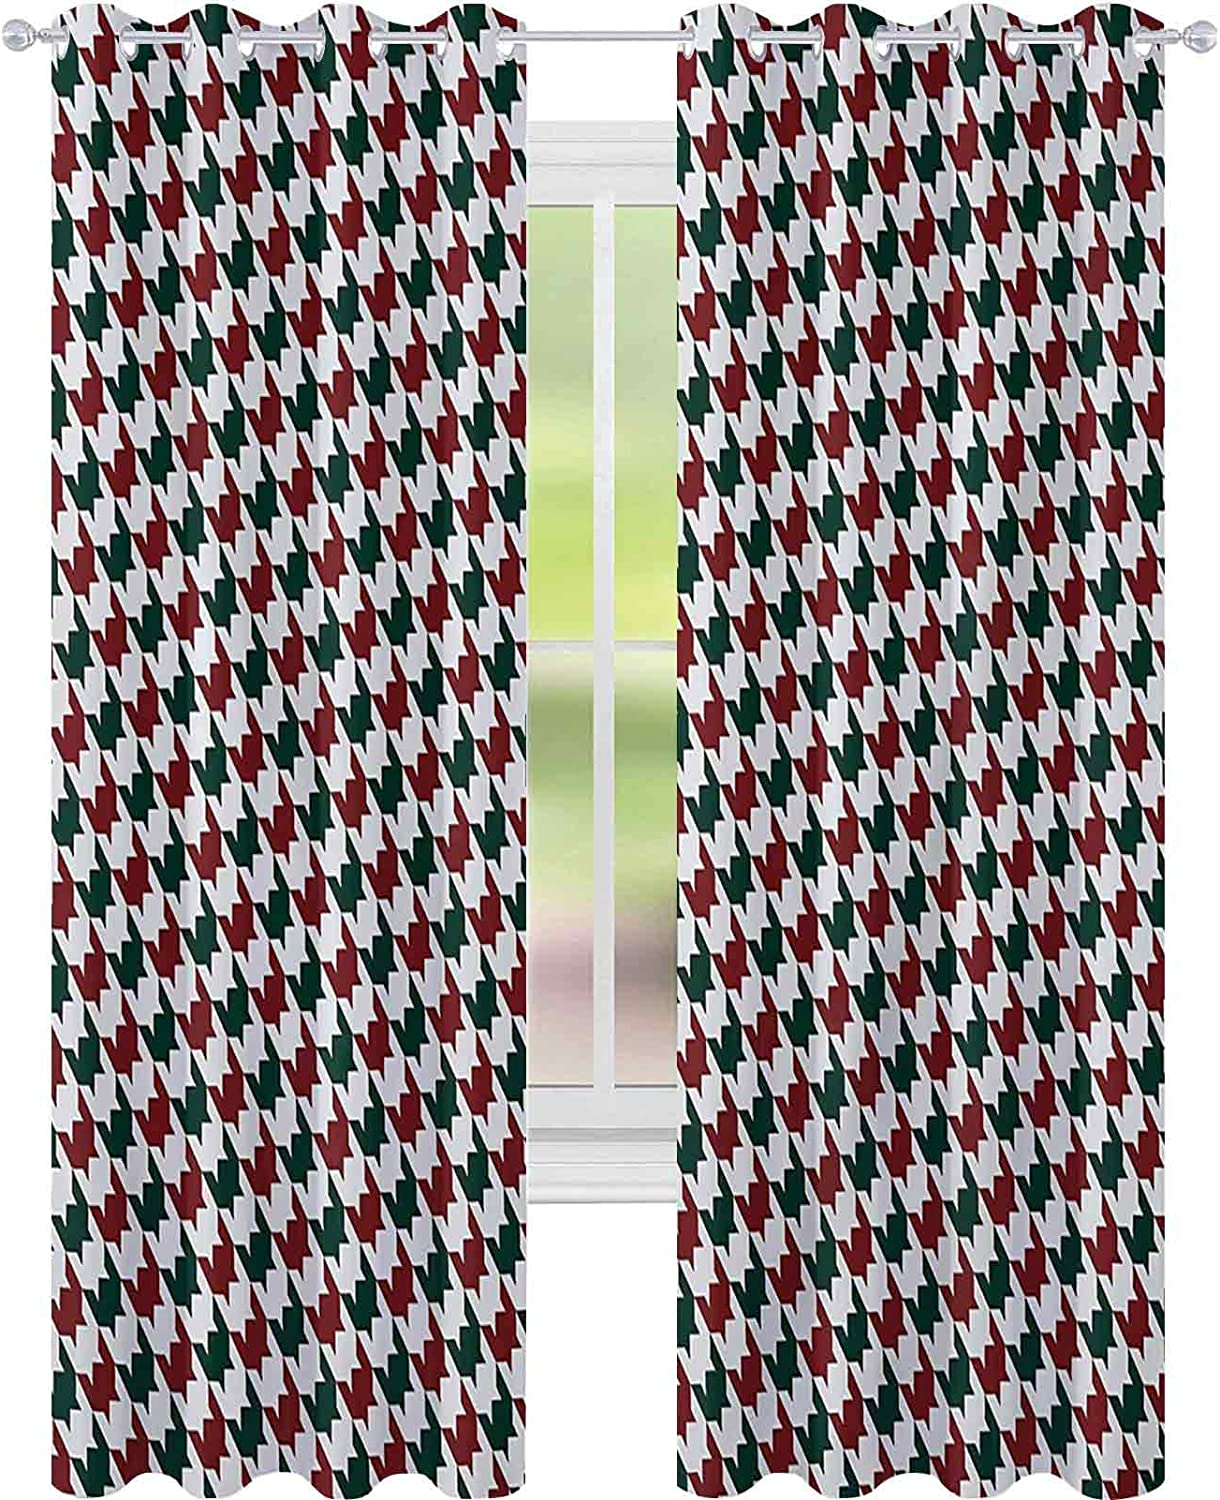 Window Curtain Drape Blackout Max Max 75% OFF 83% OFF Curtains for Bedroom Kids 52